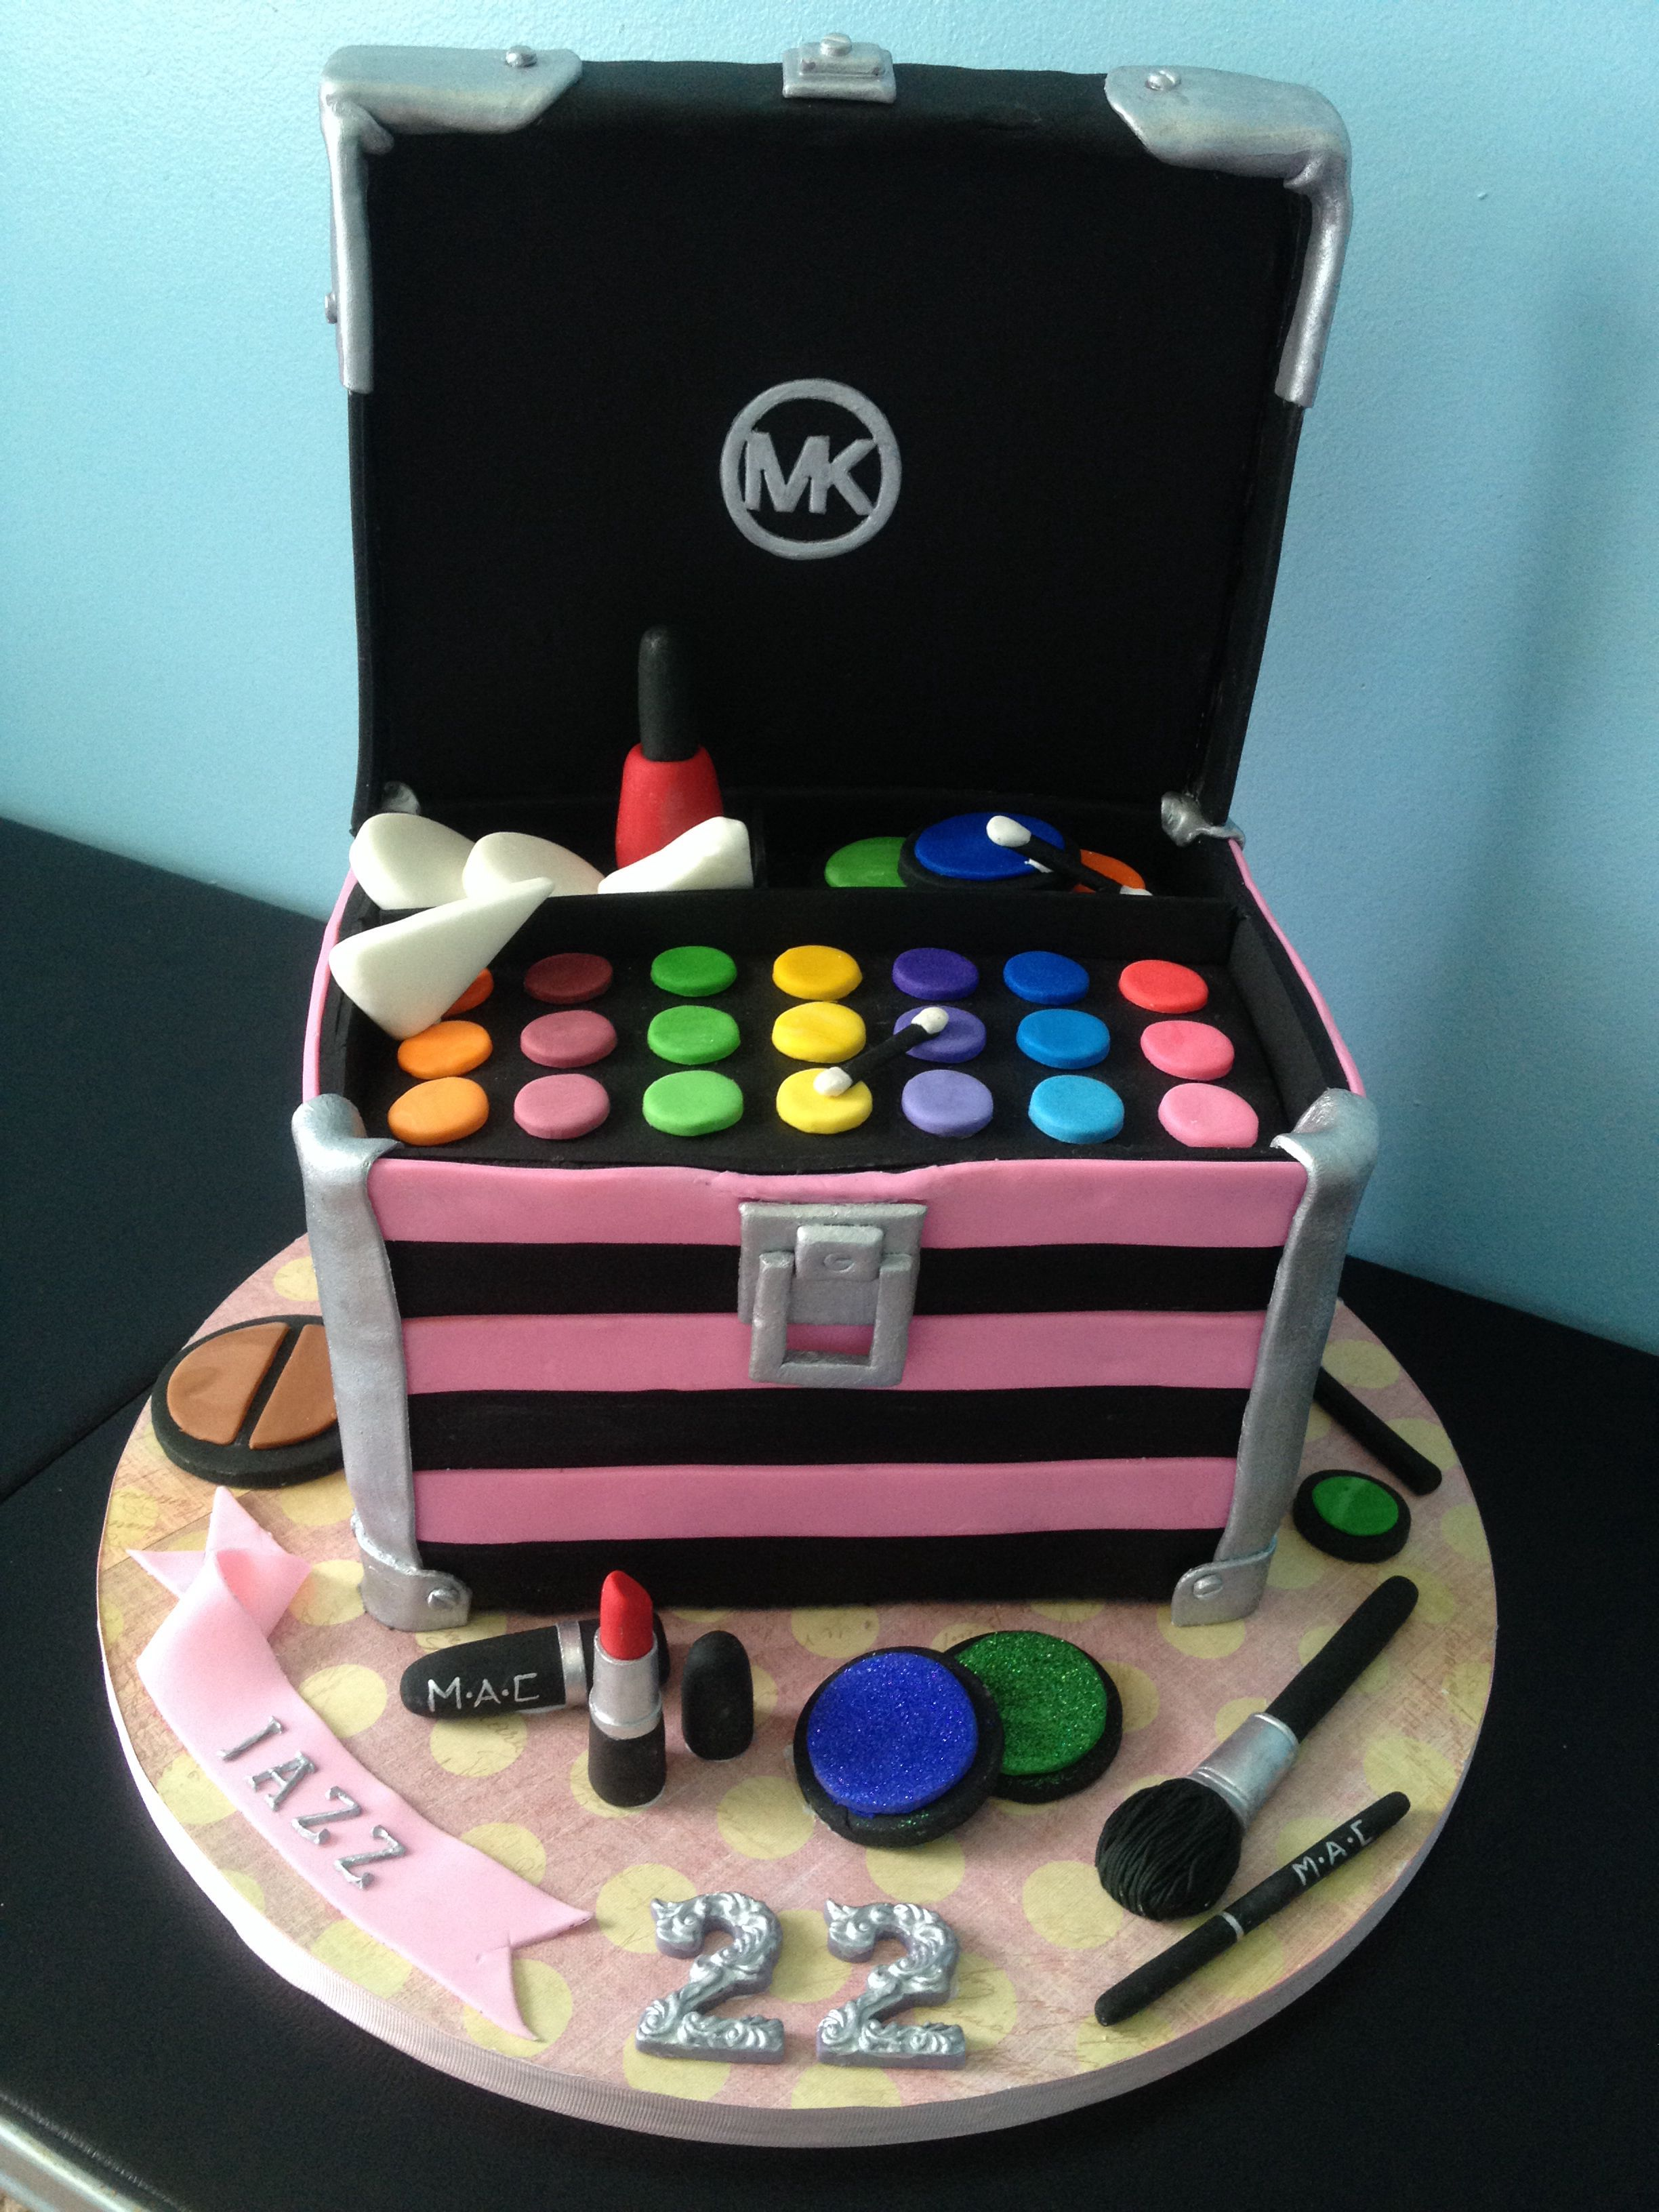 Makeup Case Cake Make Up Michael Kors Best Ever Amazing Unique MAC Mac Lipstick